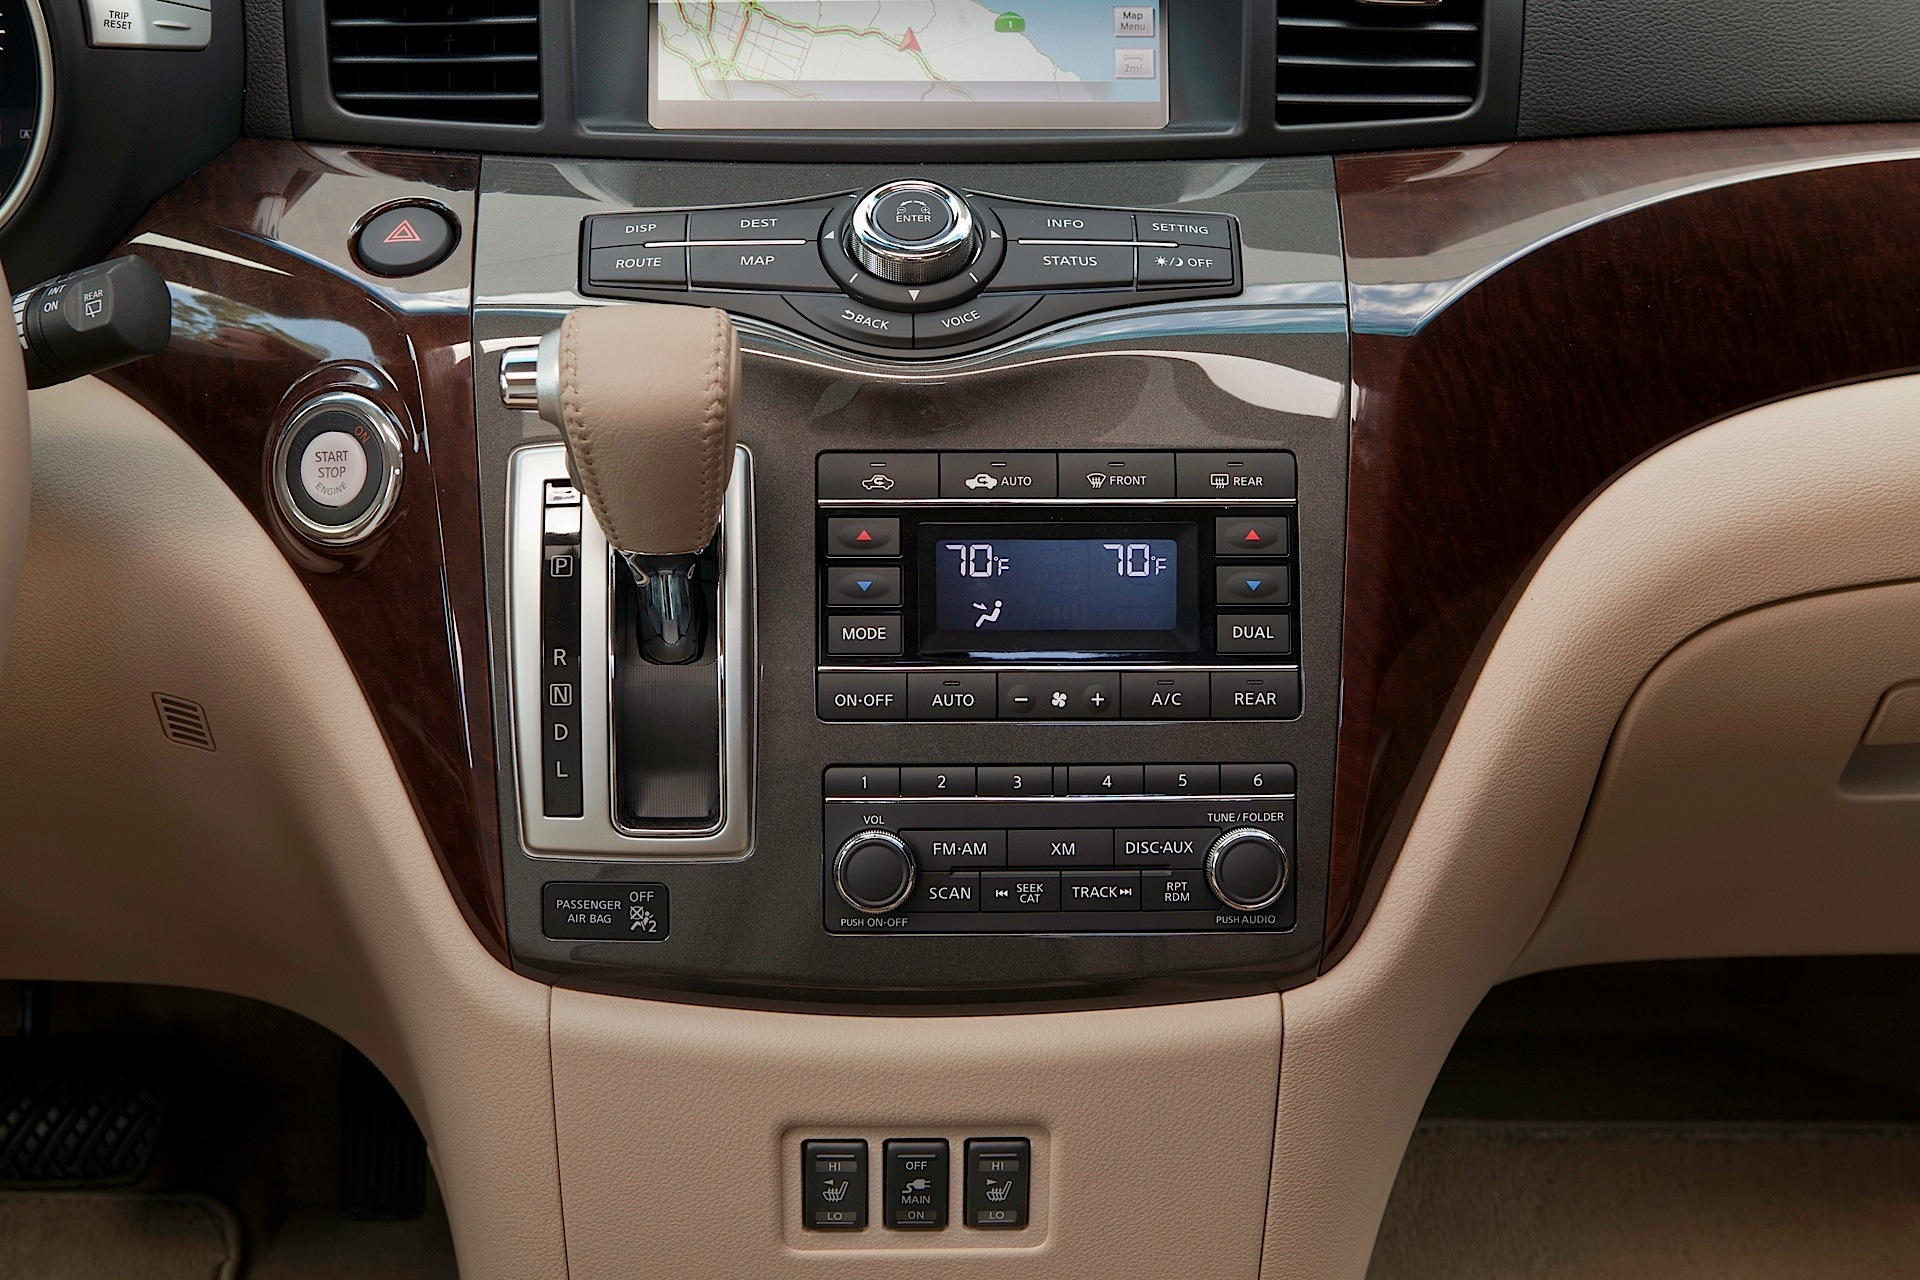 2008 nissan quest interior images reverse search filename nissanquest 474217g view image found on nissan quest 2008 interior vanachro Gallery